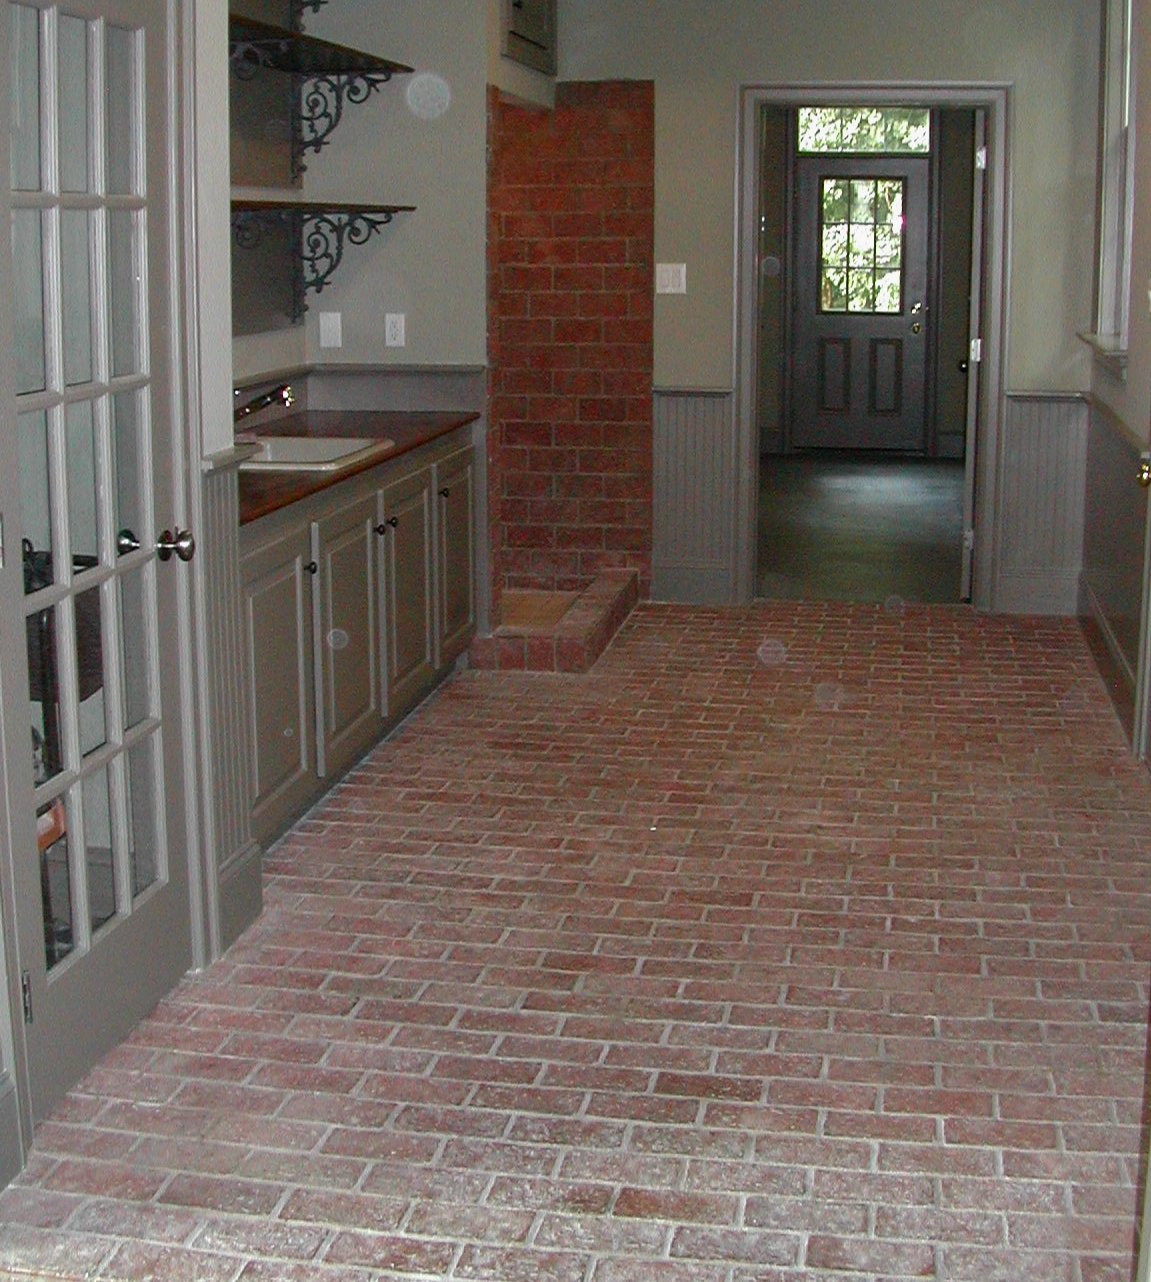 48 Brick tile  News from Inglenook Tile